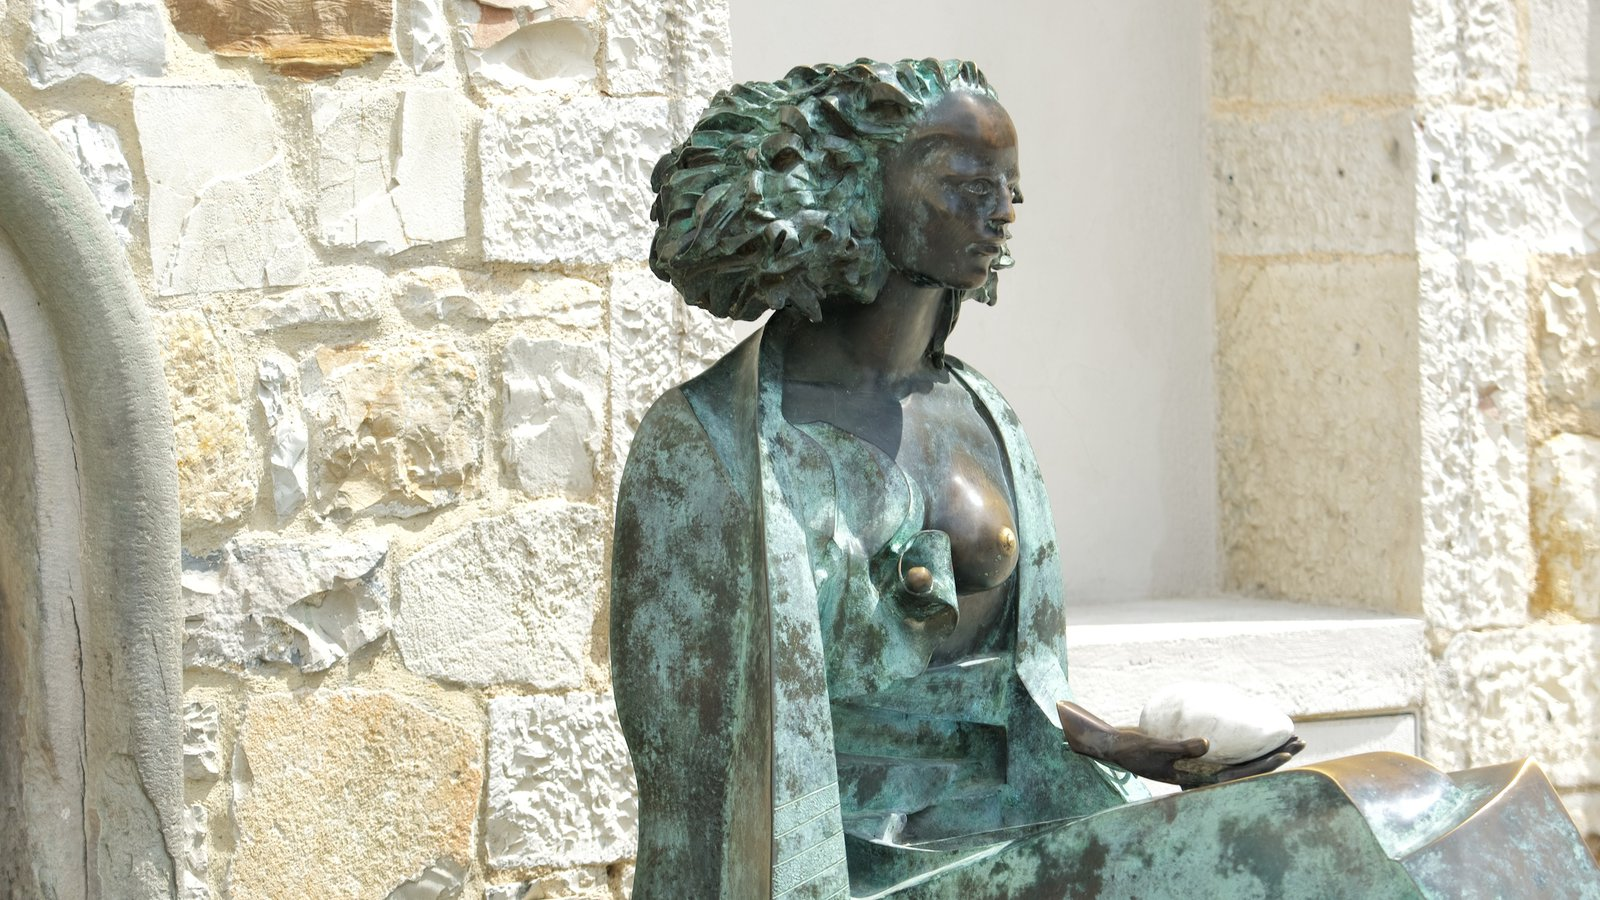 Castellina in Chianti showing a statue or sculpture